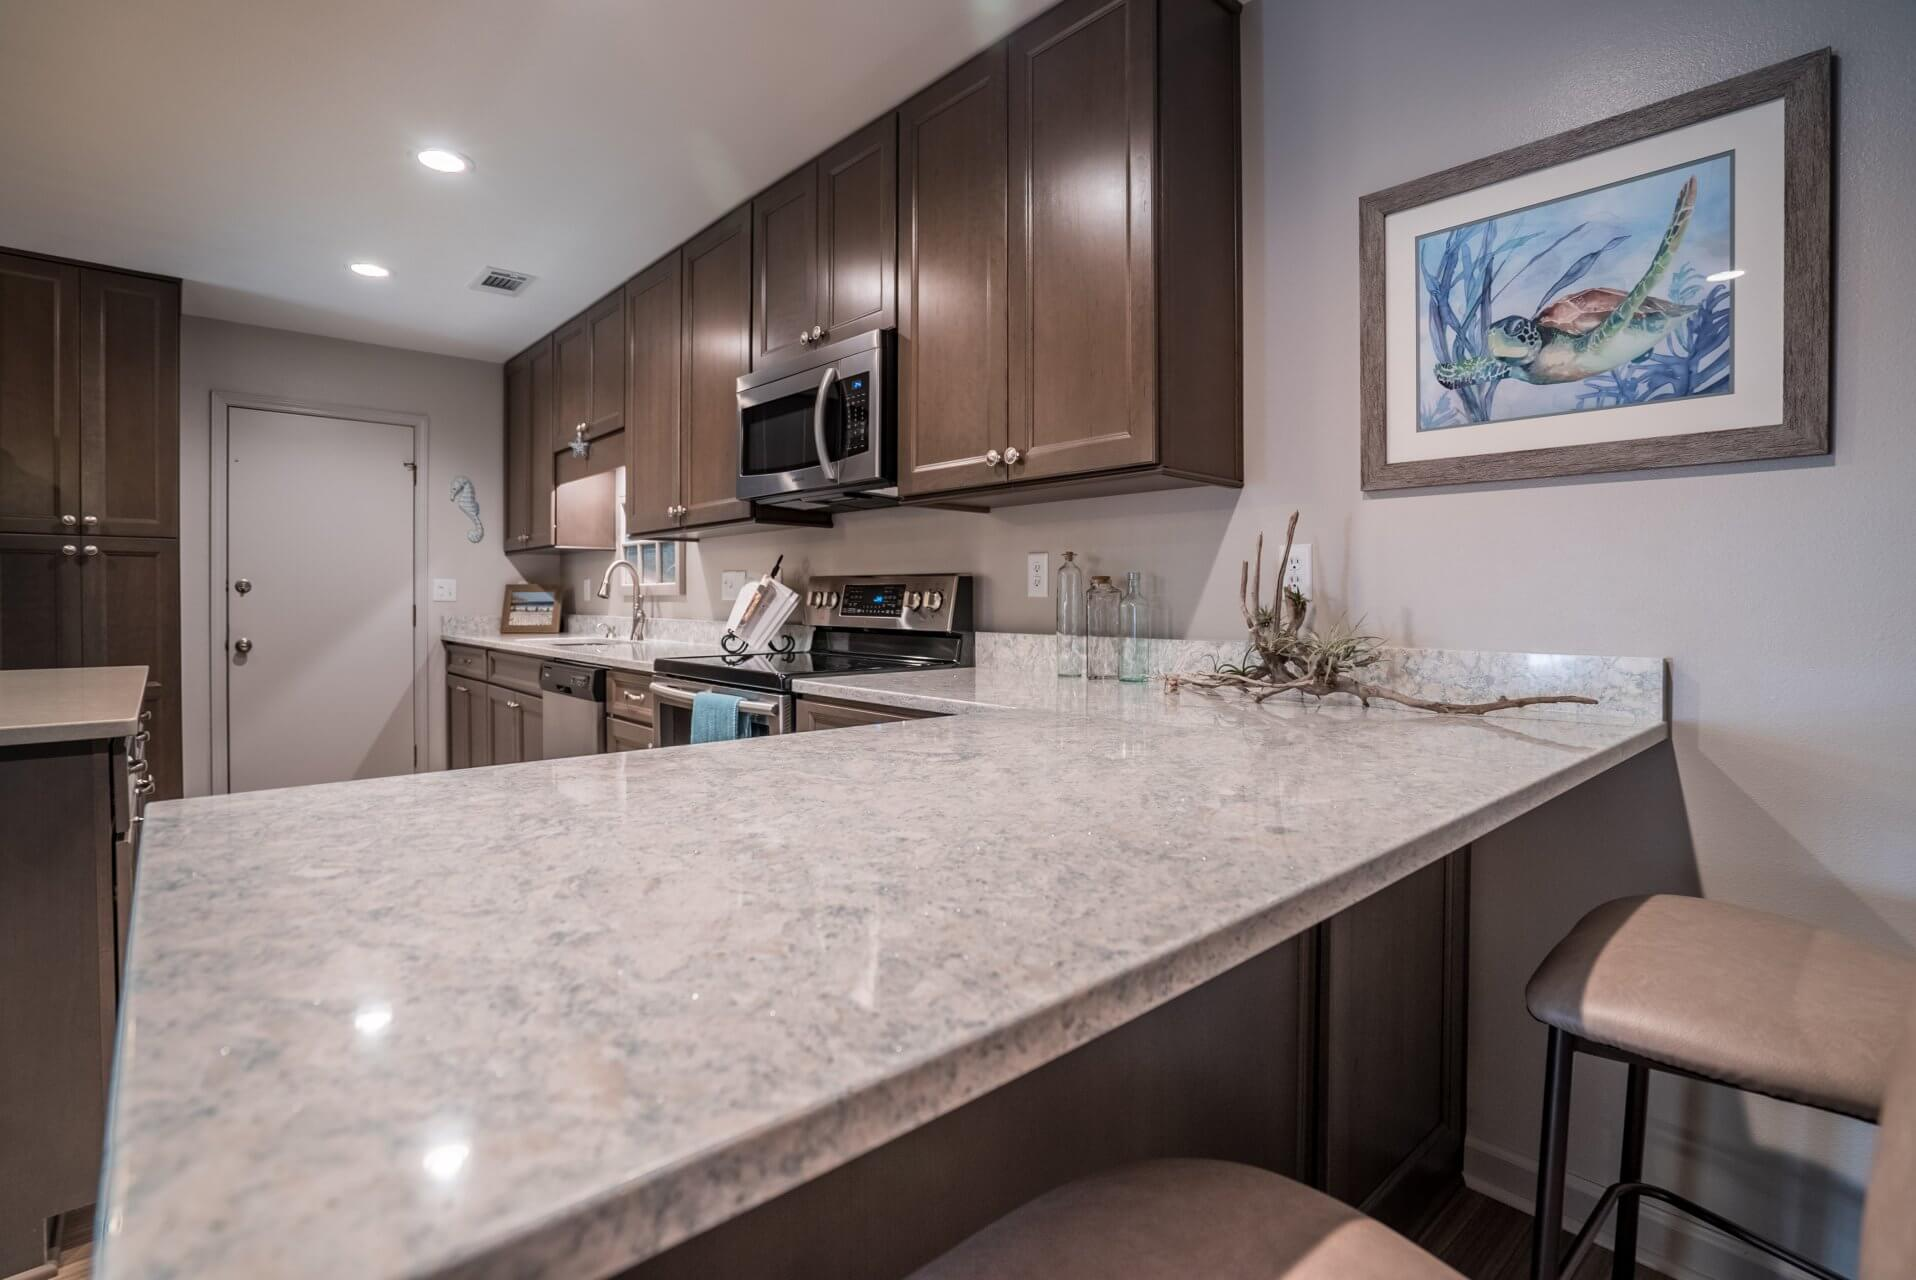 Transitional Style Kitchen view of bar countertop